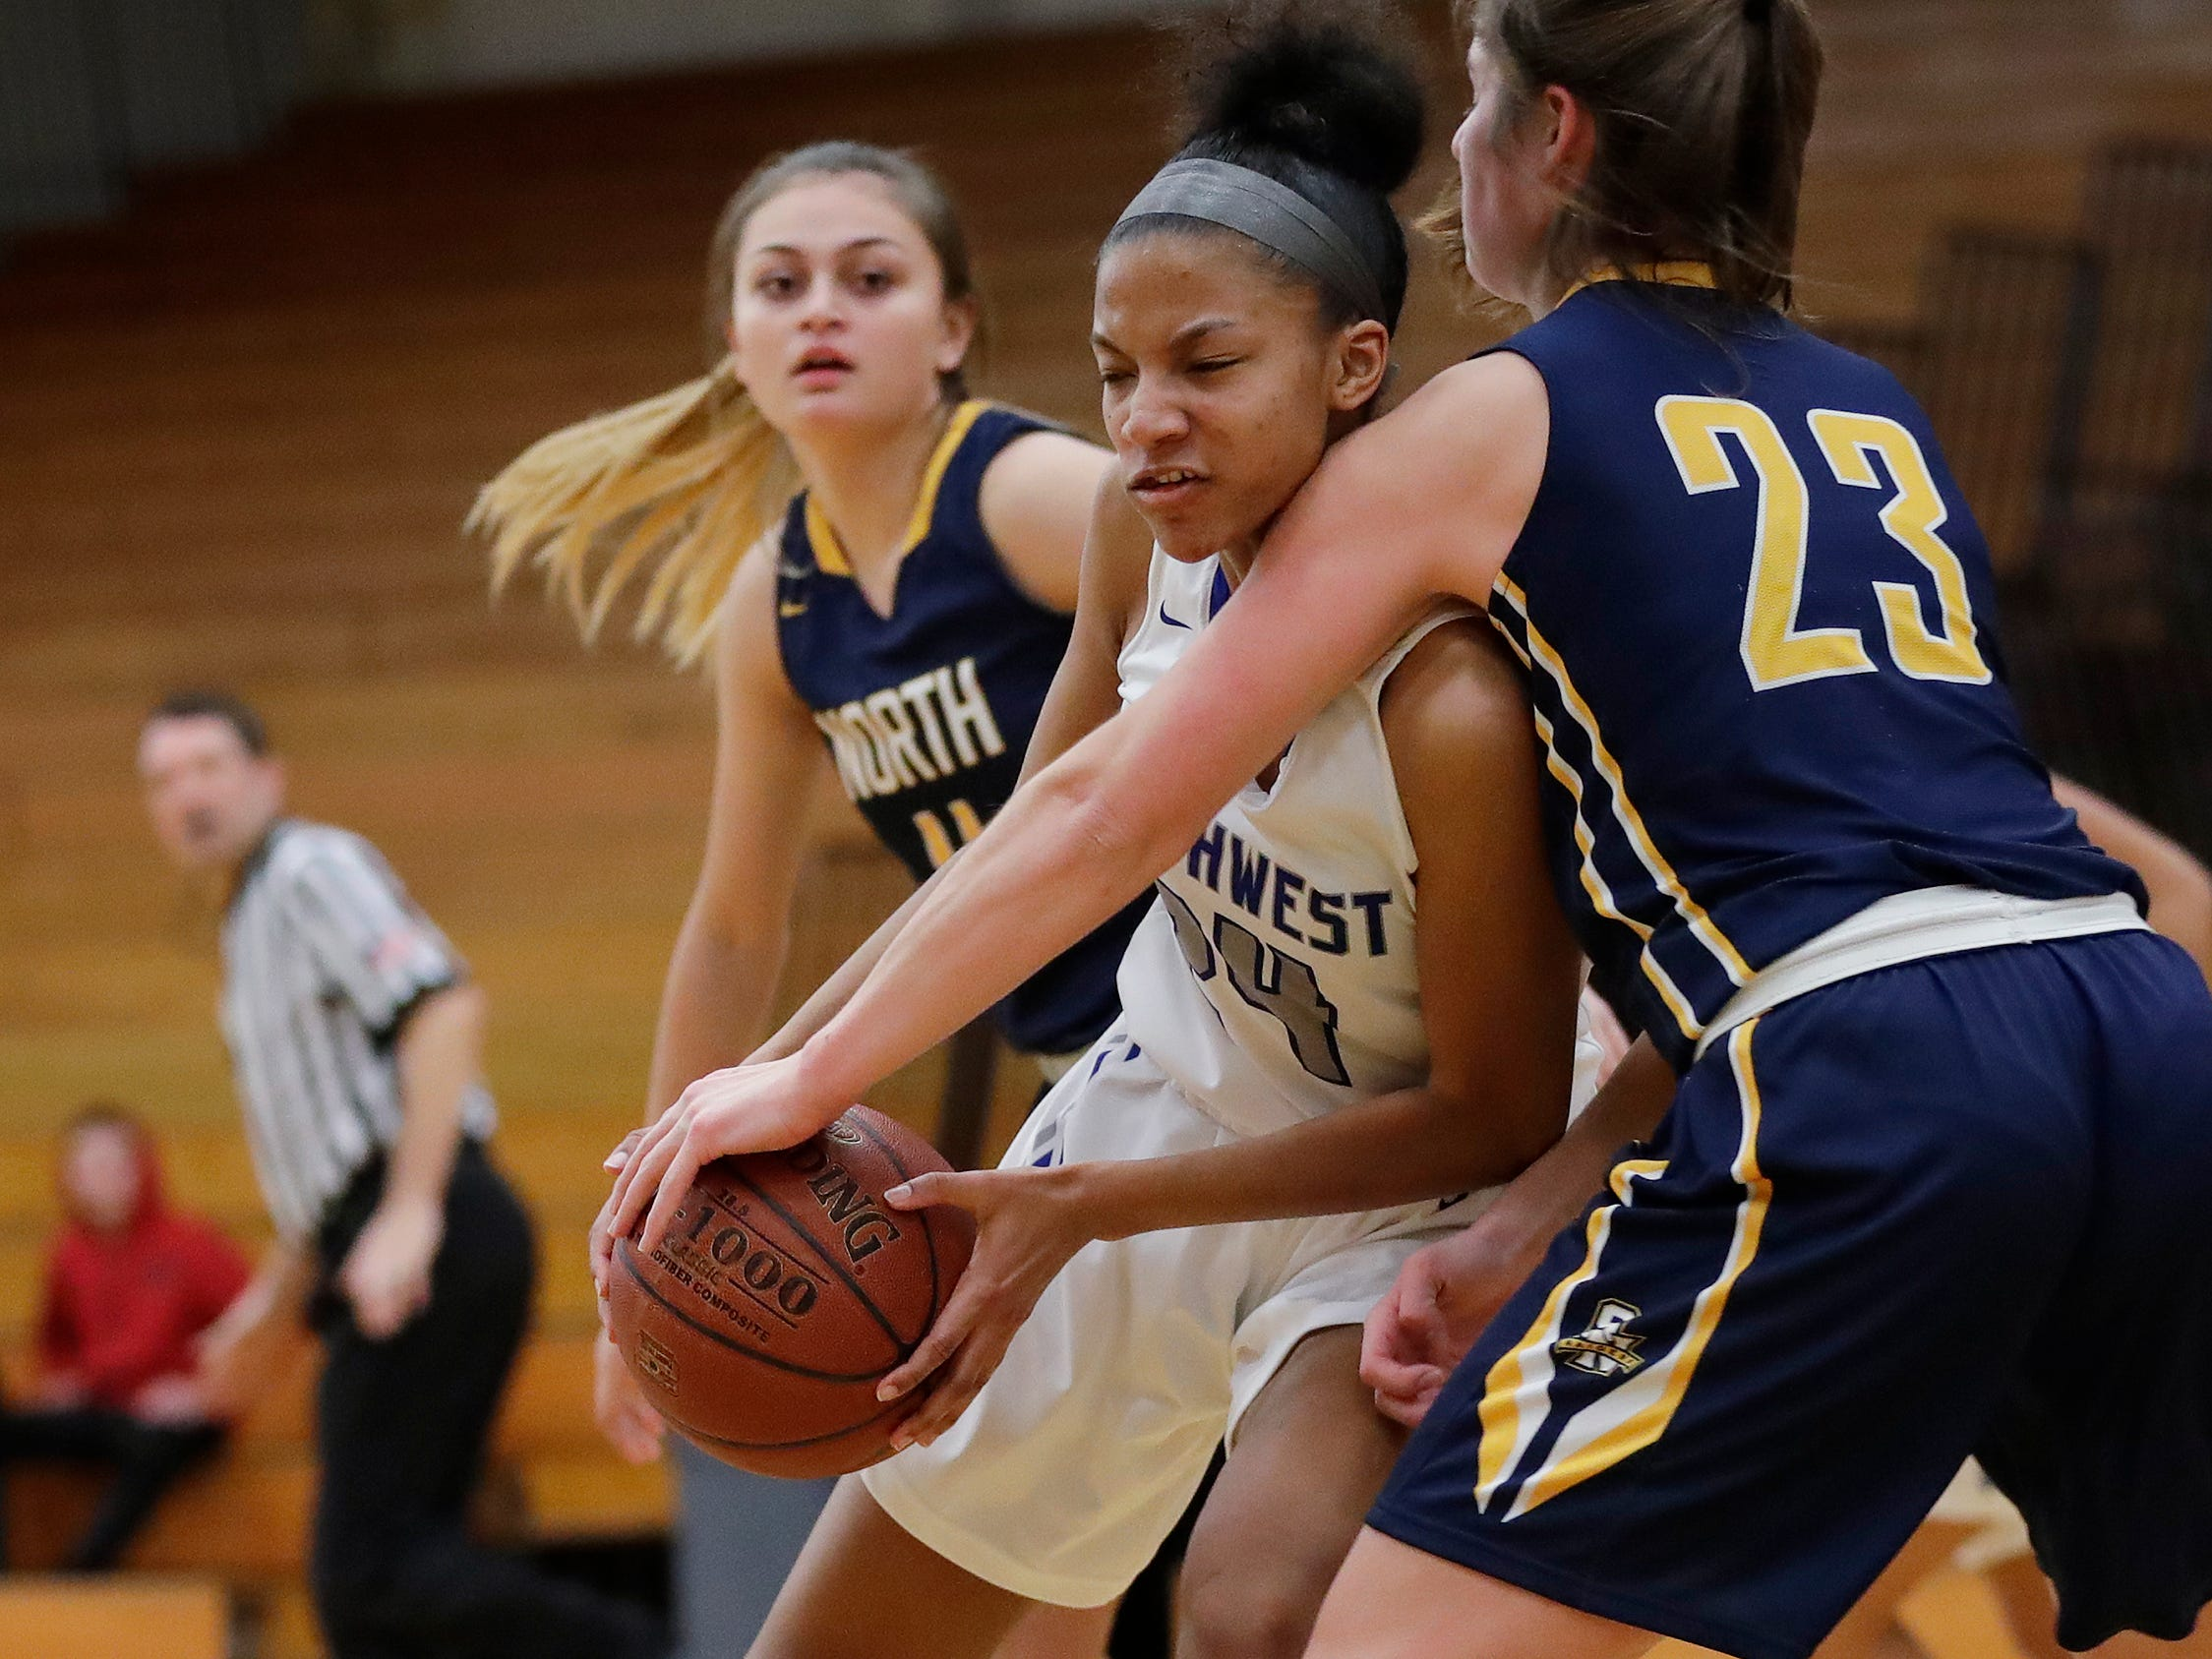 Green Bay Southwest's Jahzmeen Jackson (24) works against Sheboygan North's Meredith Opie (23) in the paint in a girls basketball game at Southwest High School on Tuesday, February 5, 2019 in Green Bay, Wis.